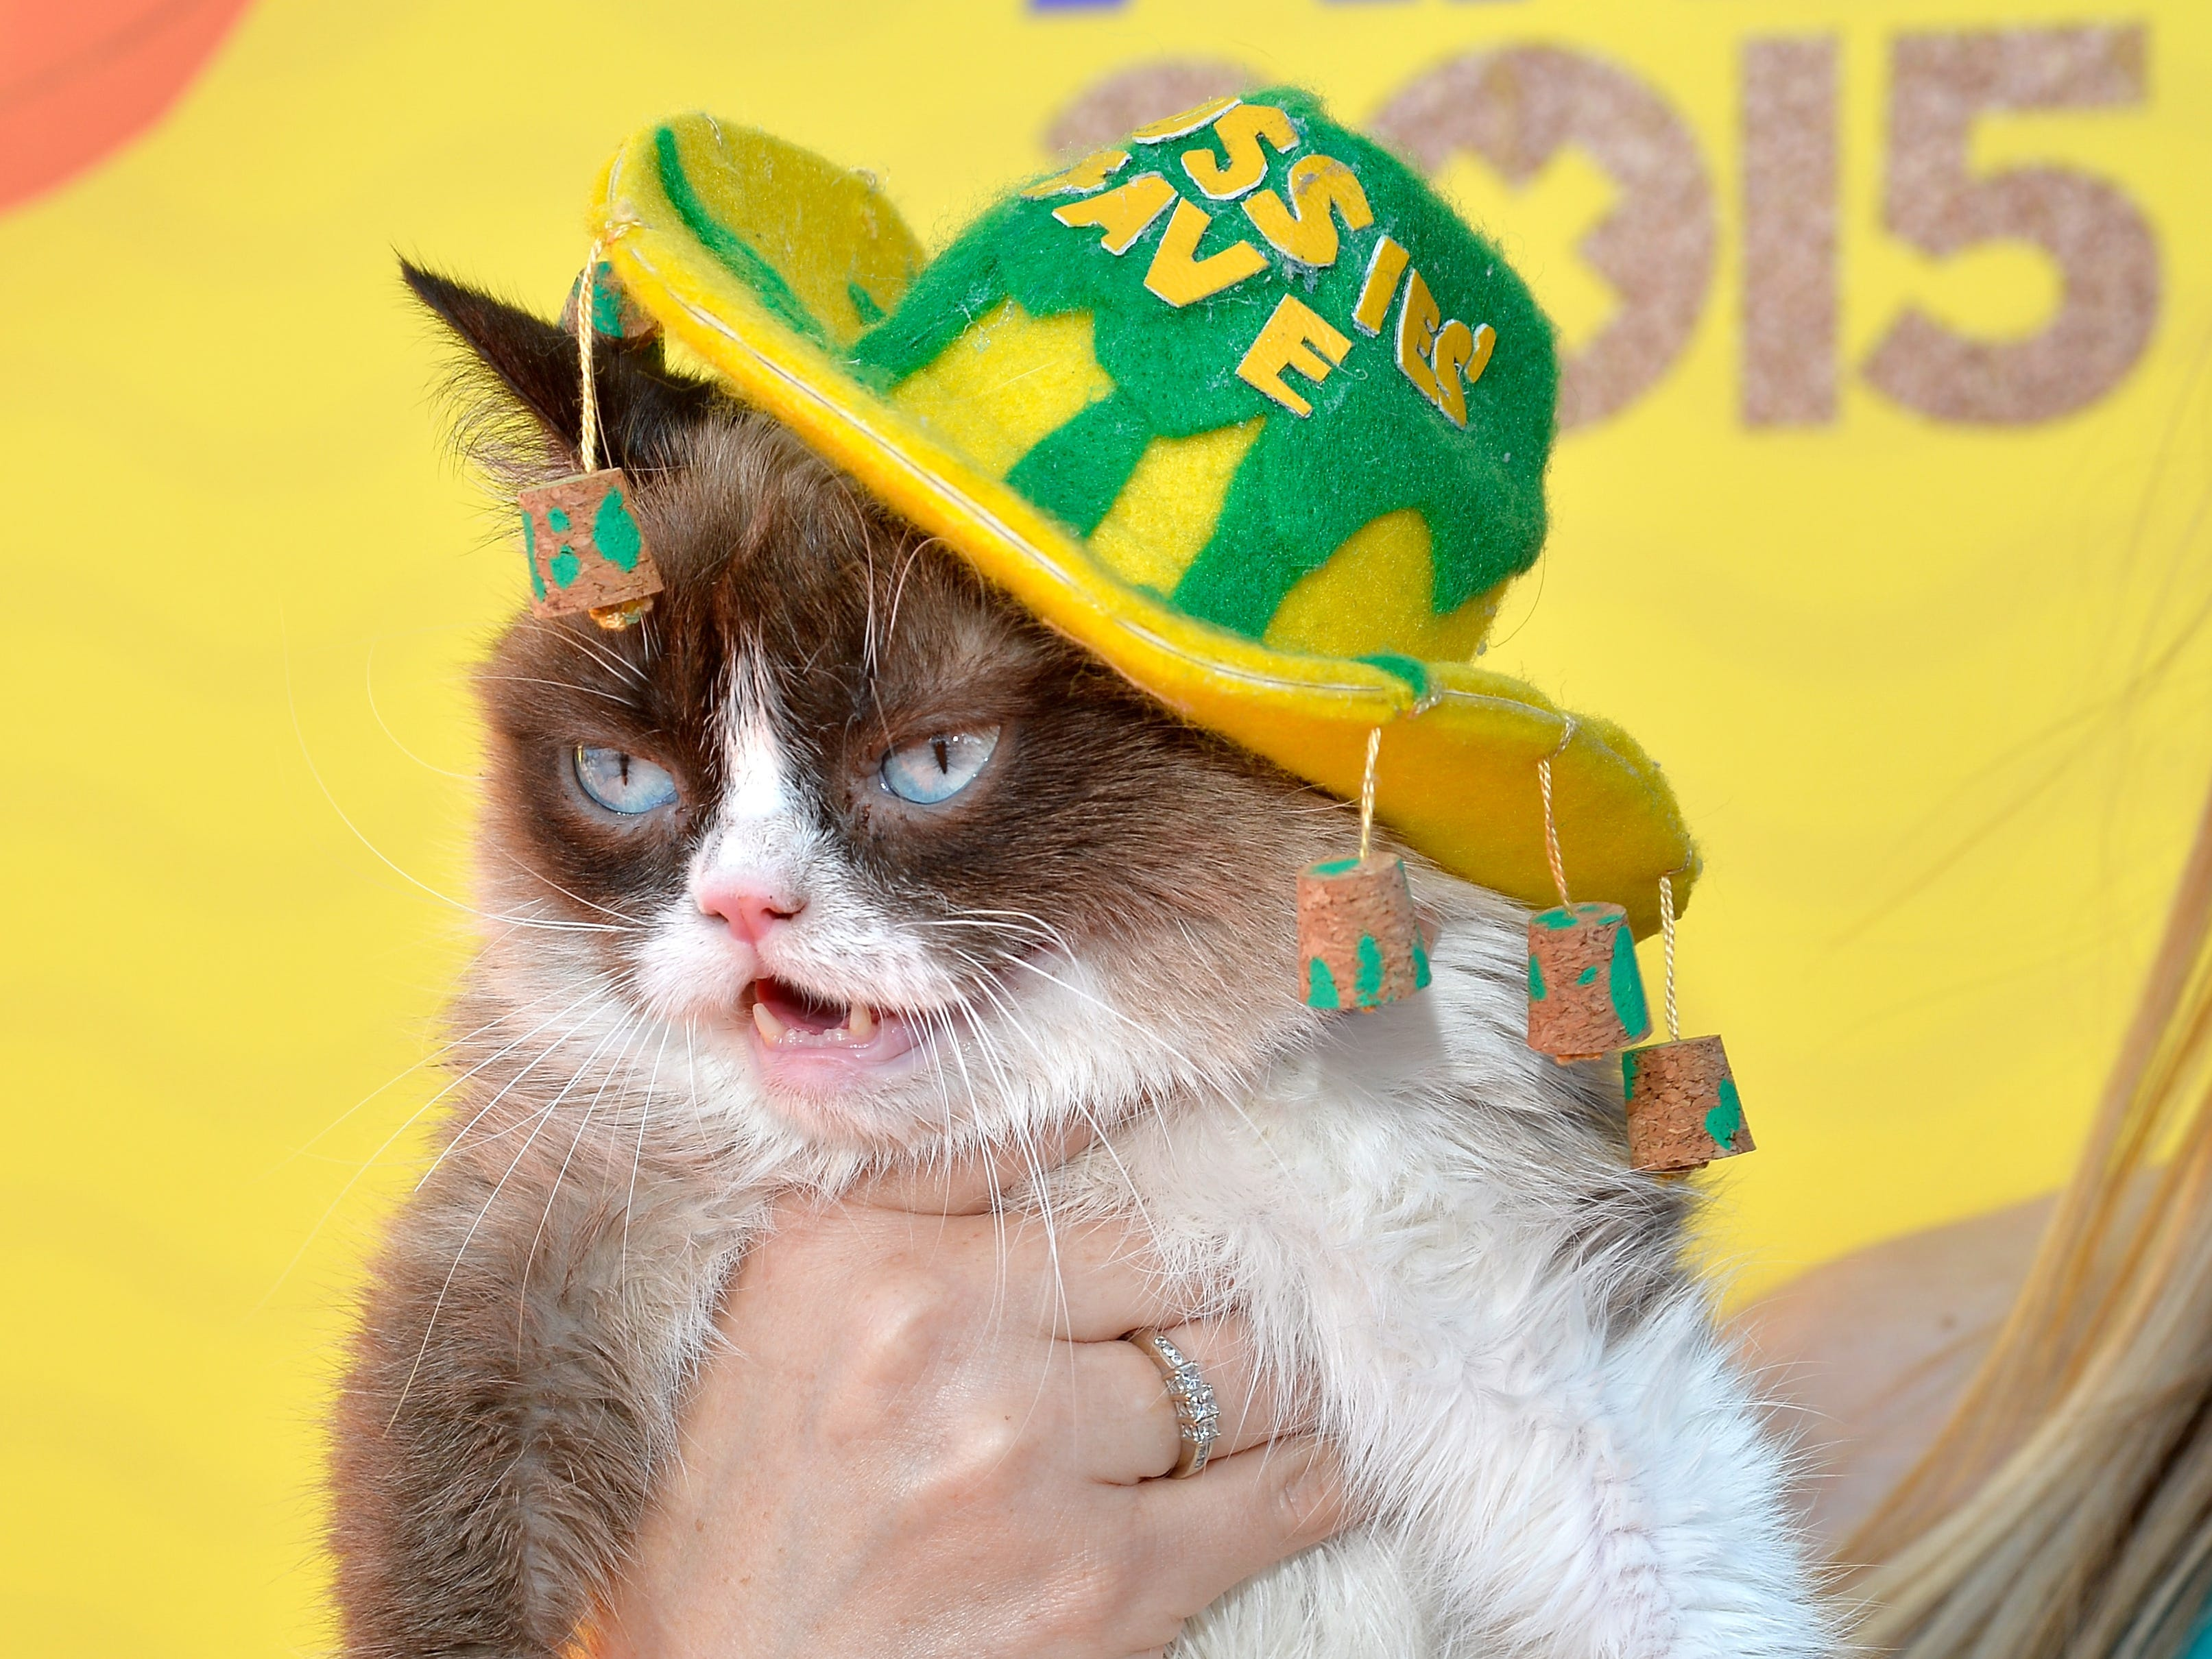 INGLEWOOD, CA - MARCH 28:  Grumpy Cat attends Nickelodeon's 28th Annual Kids' Choice Awards held at The Forum on March 28, 2015 in Inglewood, California.  (Photo by Lester Cohen/WireImage) ORG XMIT: 543522063 ORIG FILE ID: 467944750